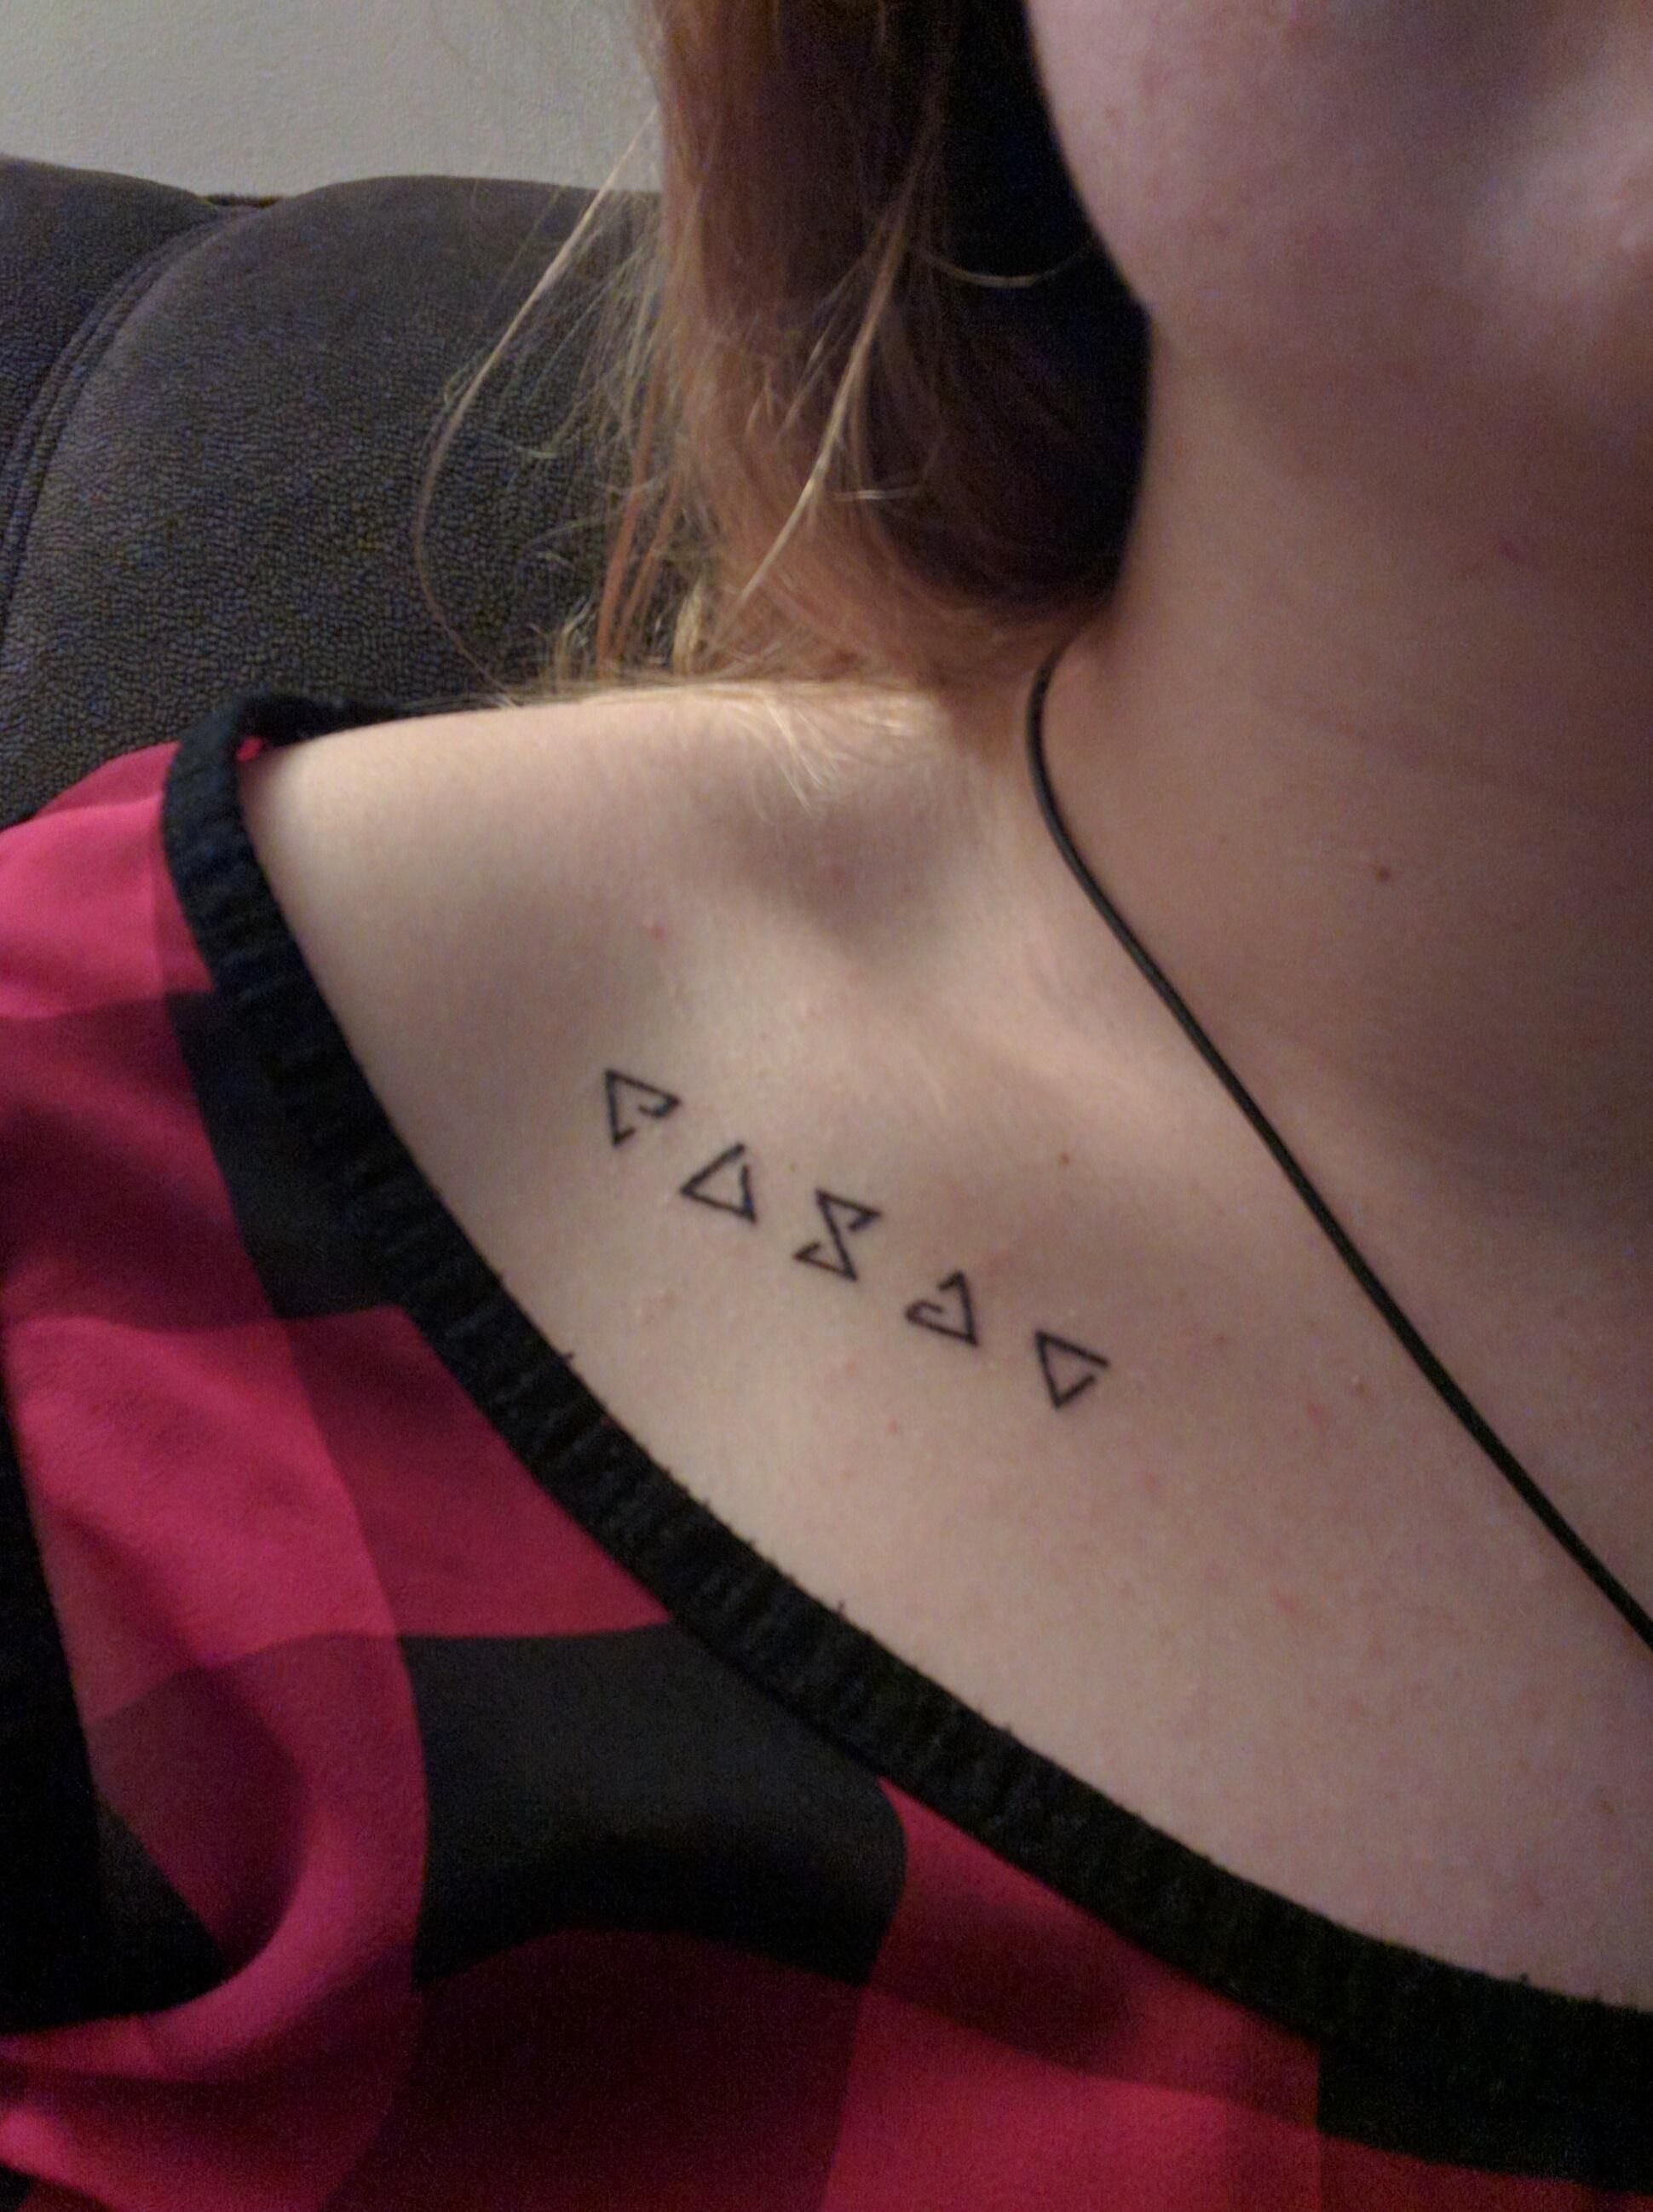 Tattoo Aries - the choice of purposeful and persevering